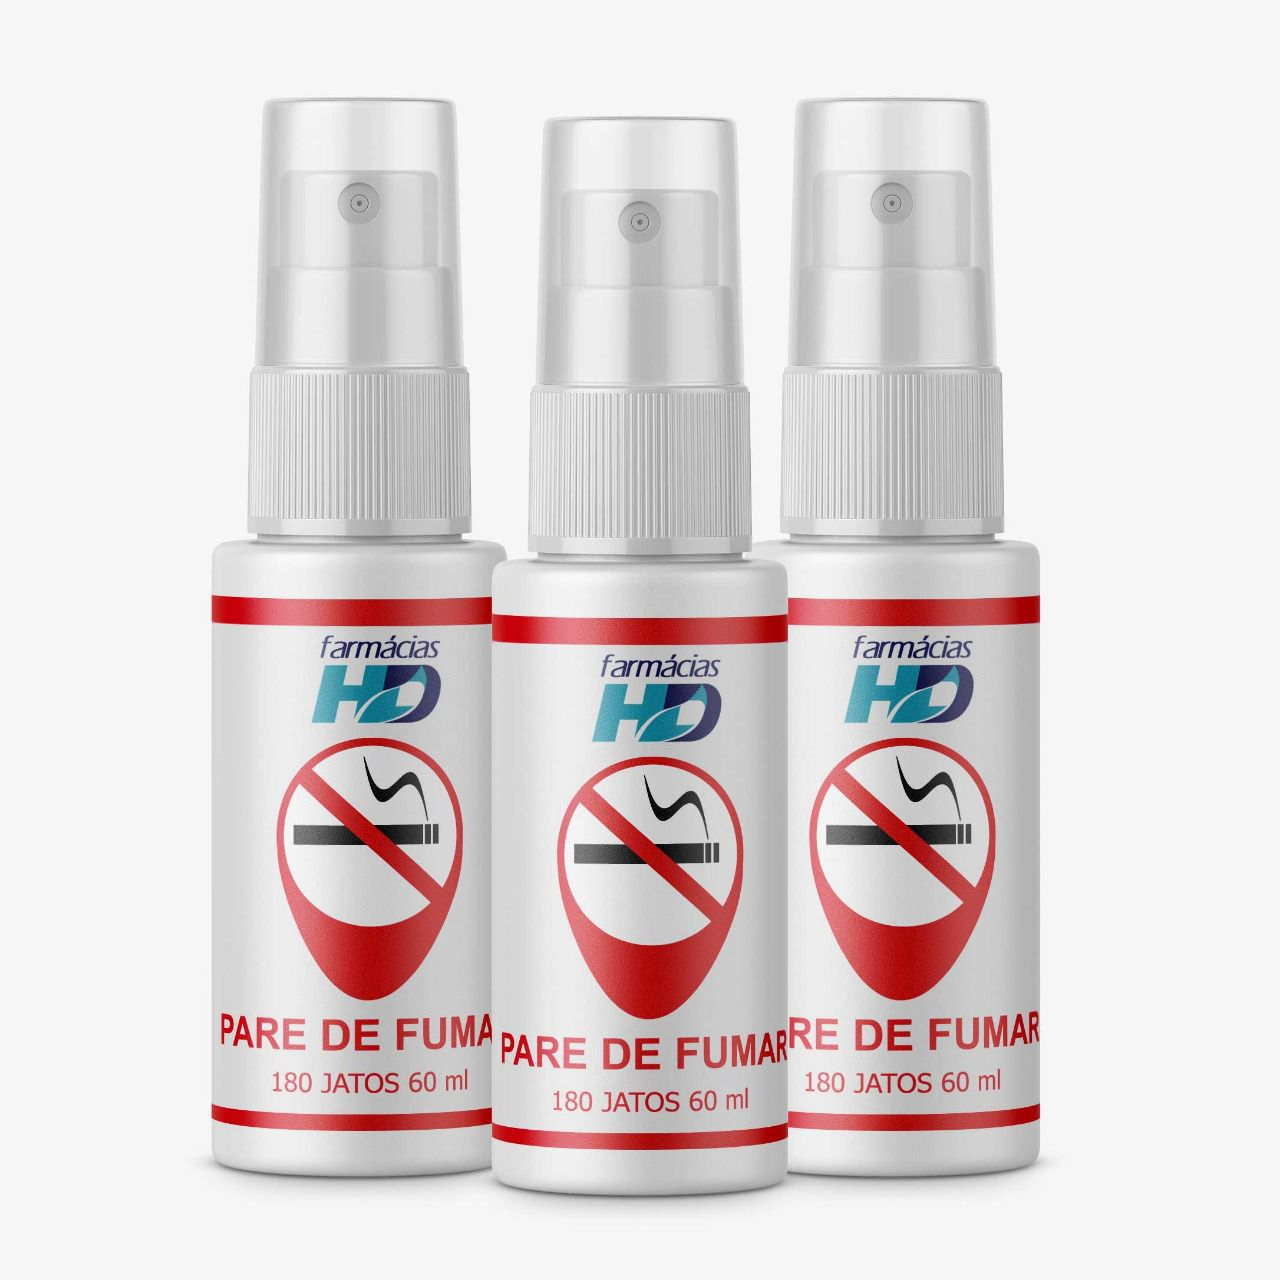 PARE DE FUMAR   . 3 SPRAYS DE 60 ML 180 JATOS